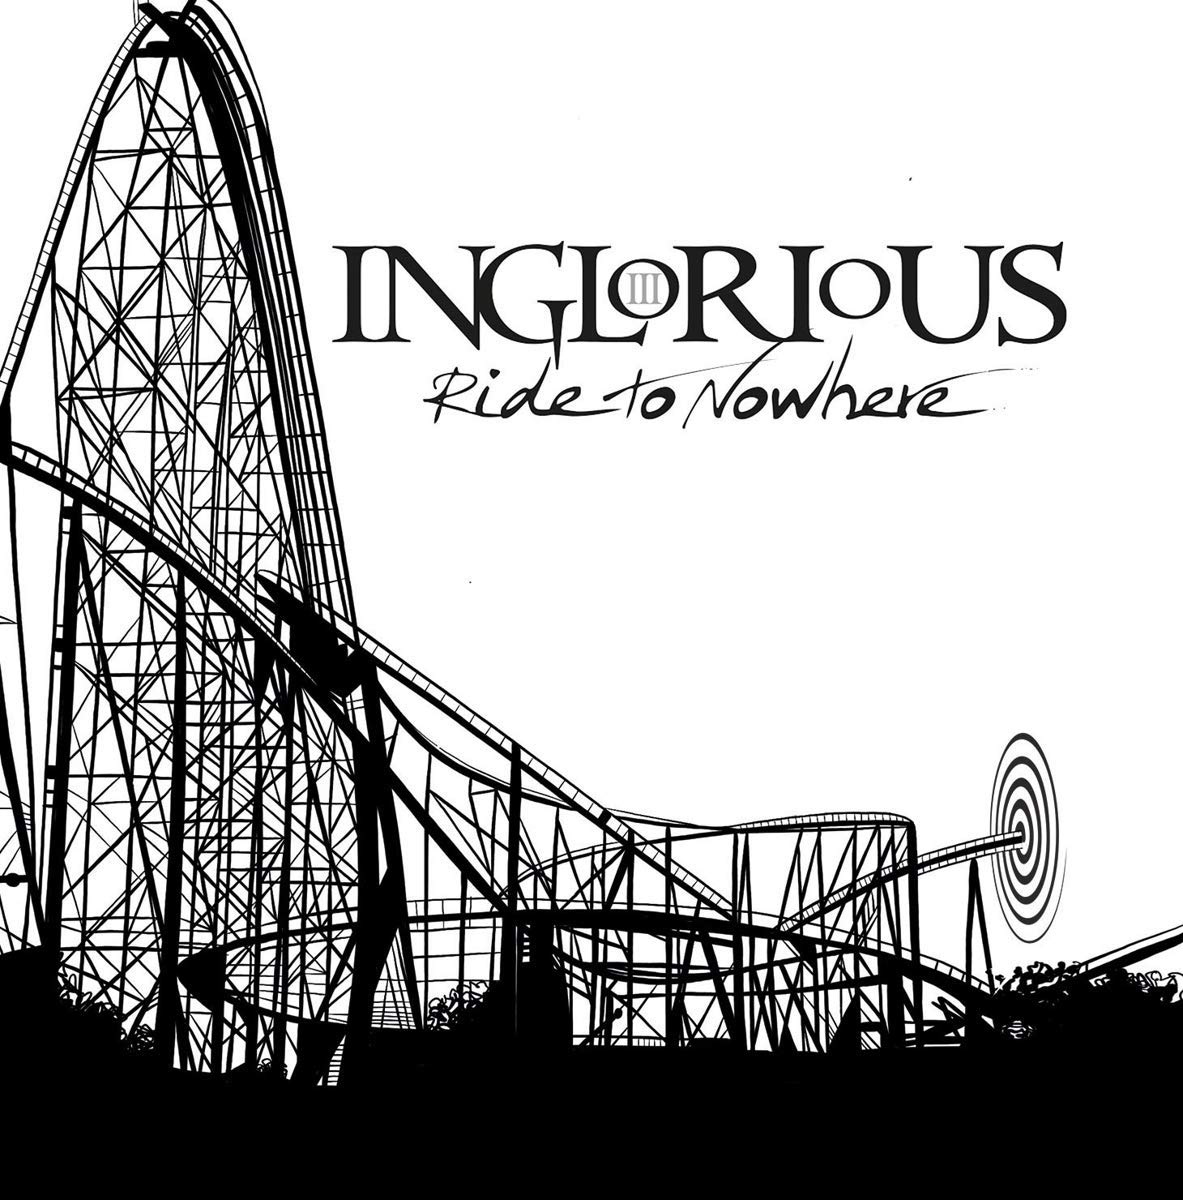 Inglorious - Ride To Nowhere (2019) .mp3 -320 Kbps